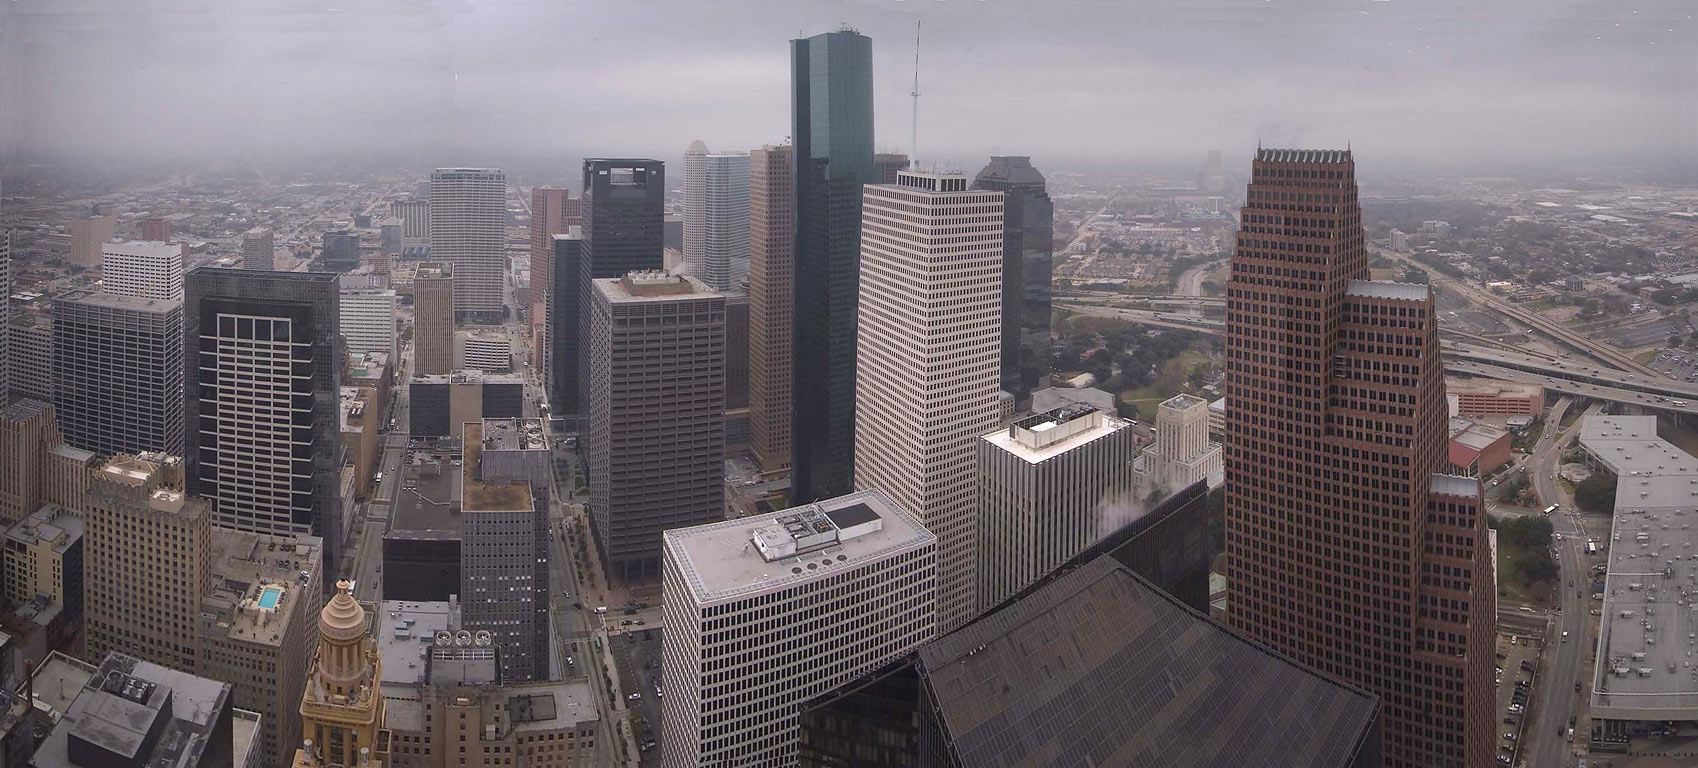 Panorama of downtown from Chase Tower. Houston, Texas